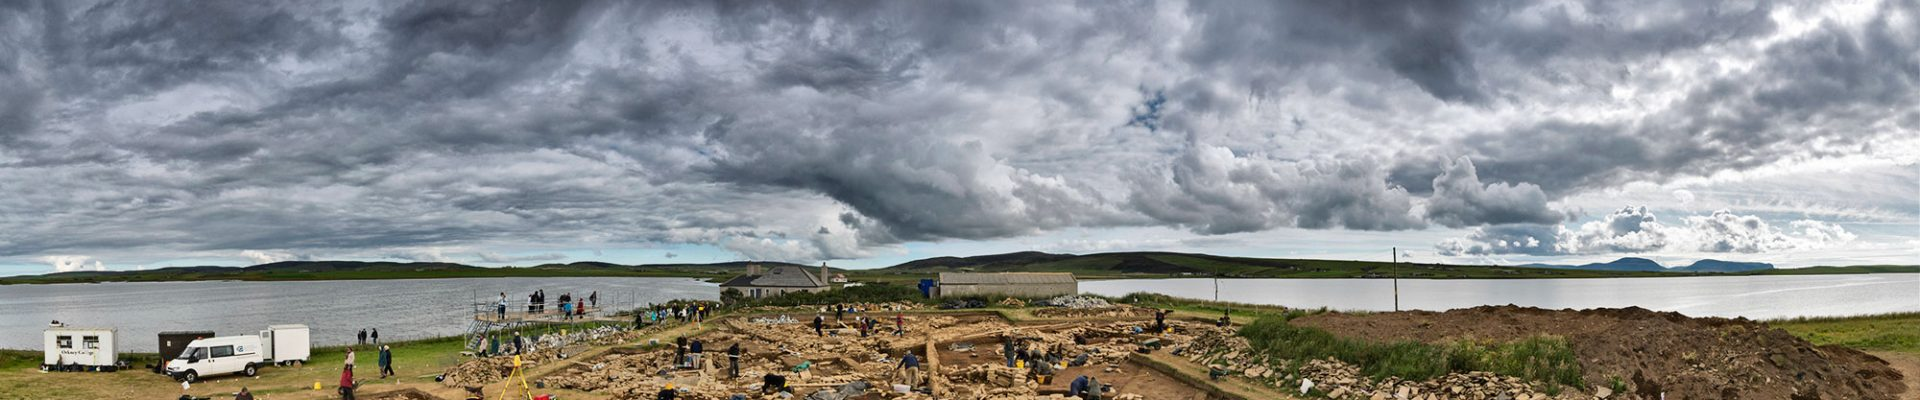 "The ""Brodgar Boy"" found at the 2011 excavations on the Ness of Brodgar, Orkney."